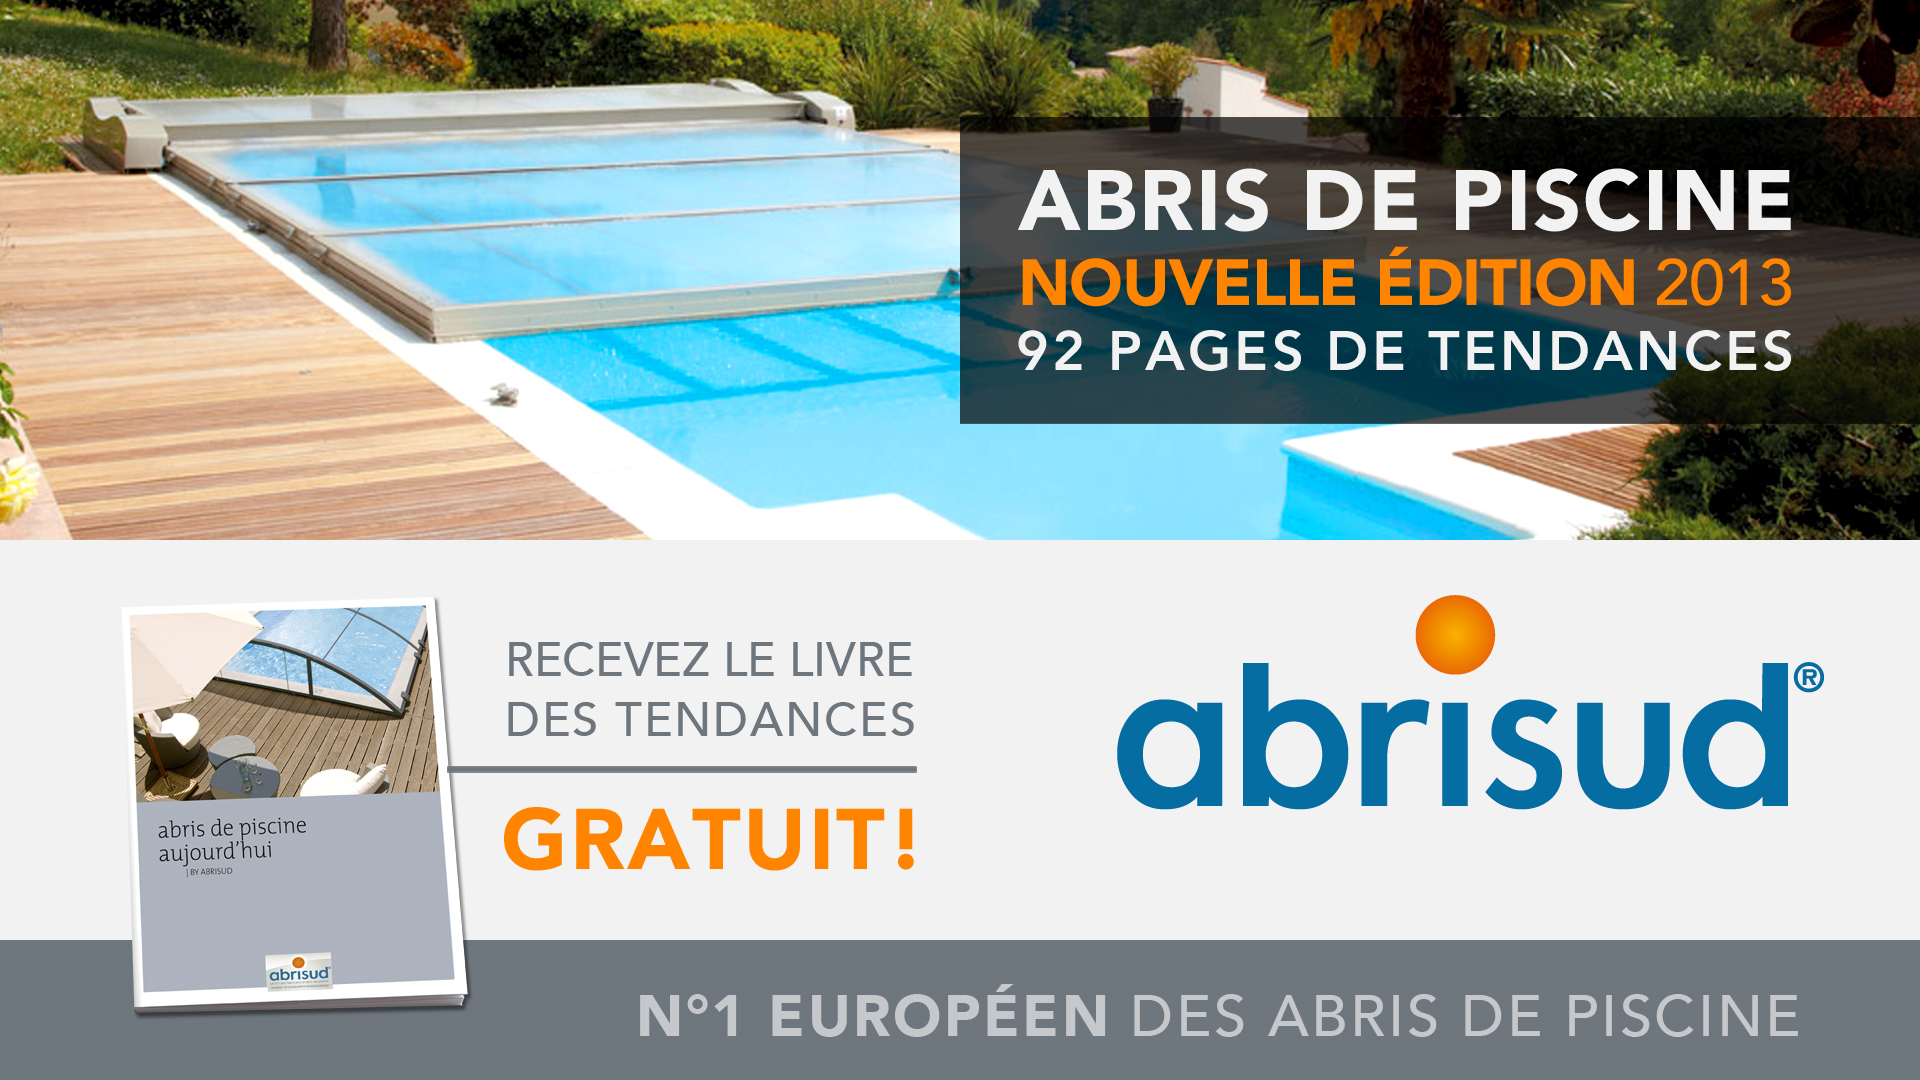 abrisud-creation-banniere-web-animation-googleadwords-caconcept-alexis-cretin-graphiste-montpellier